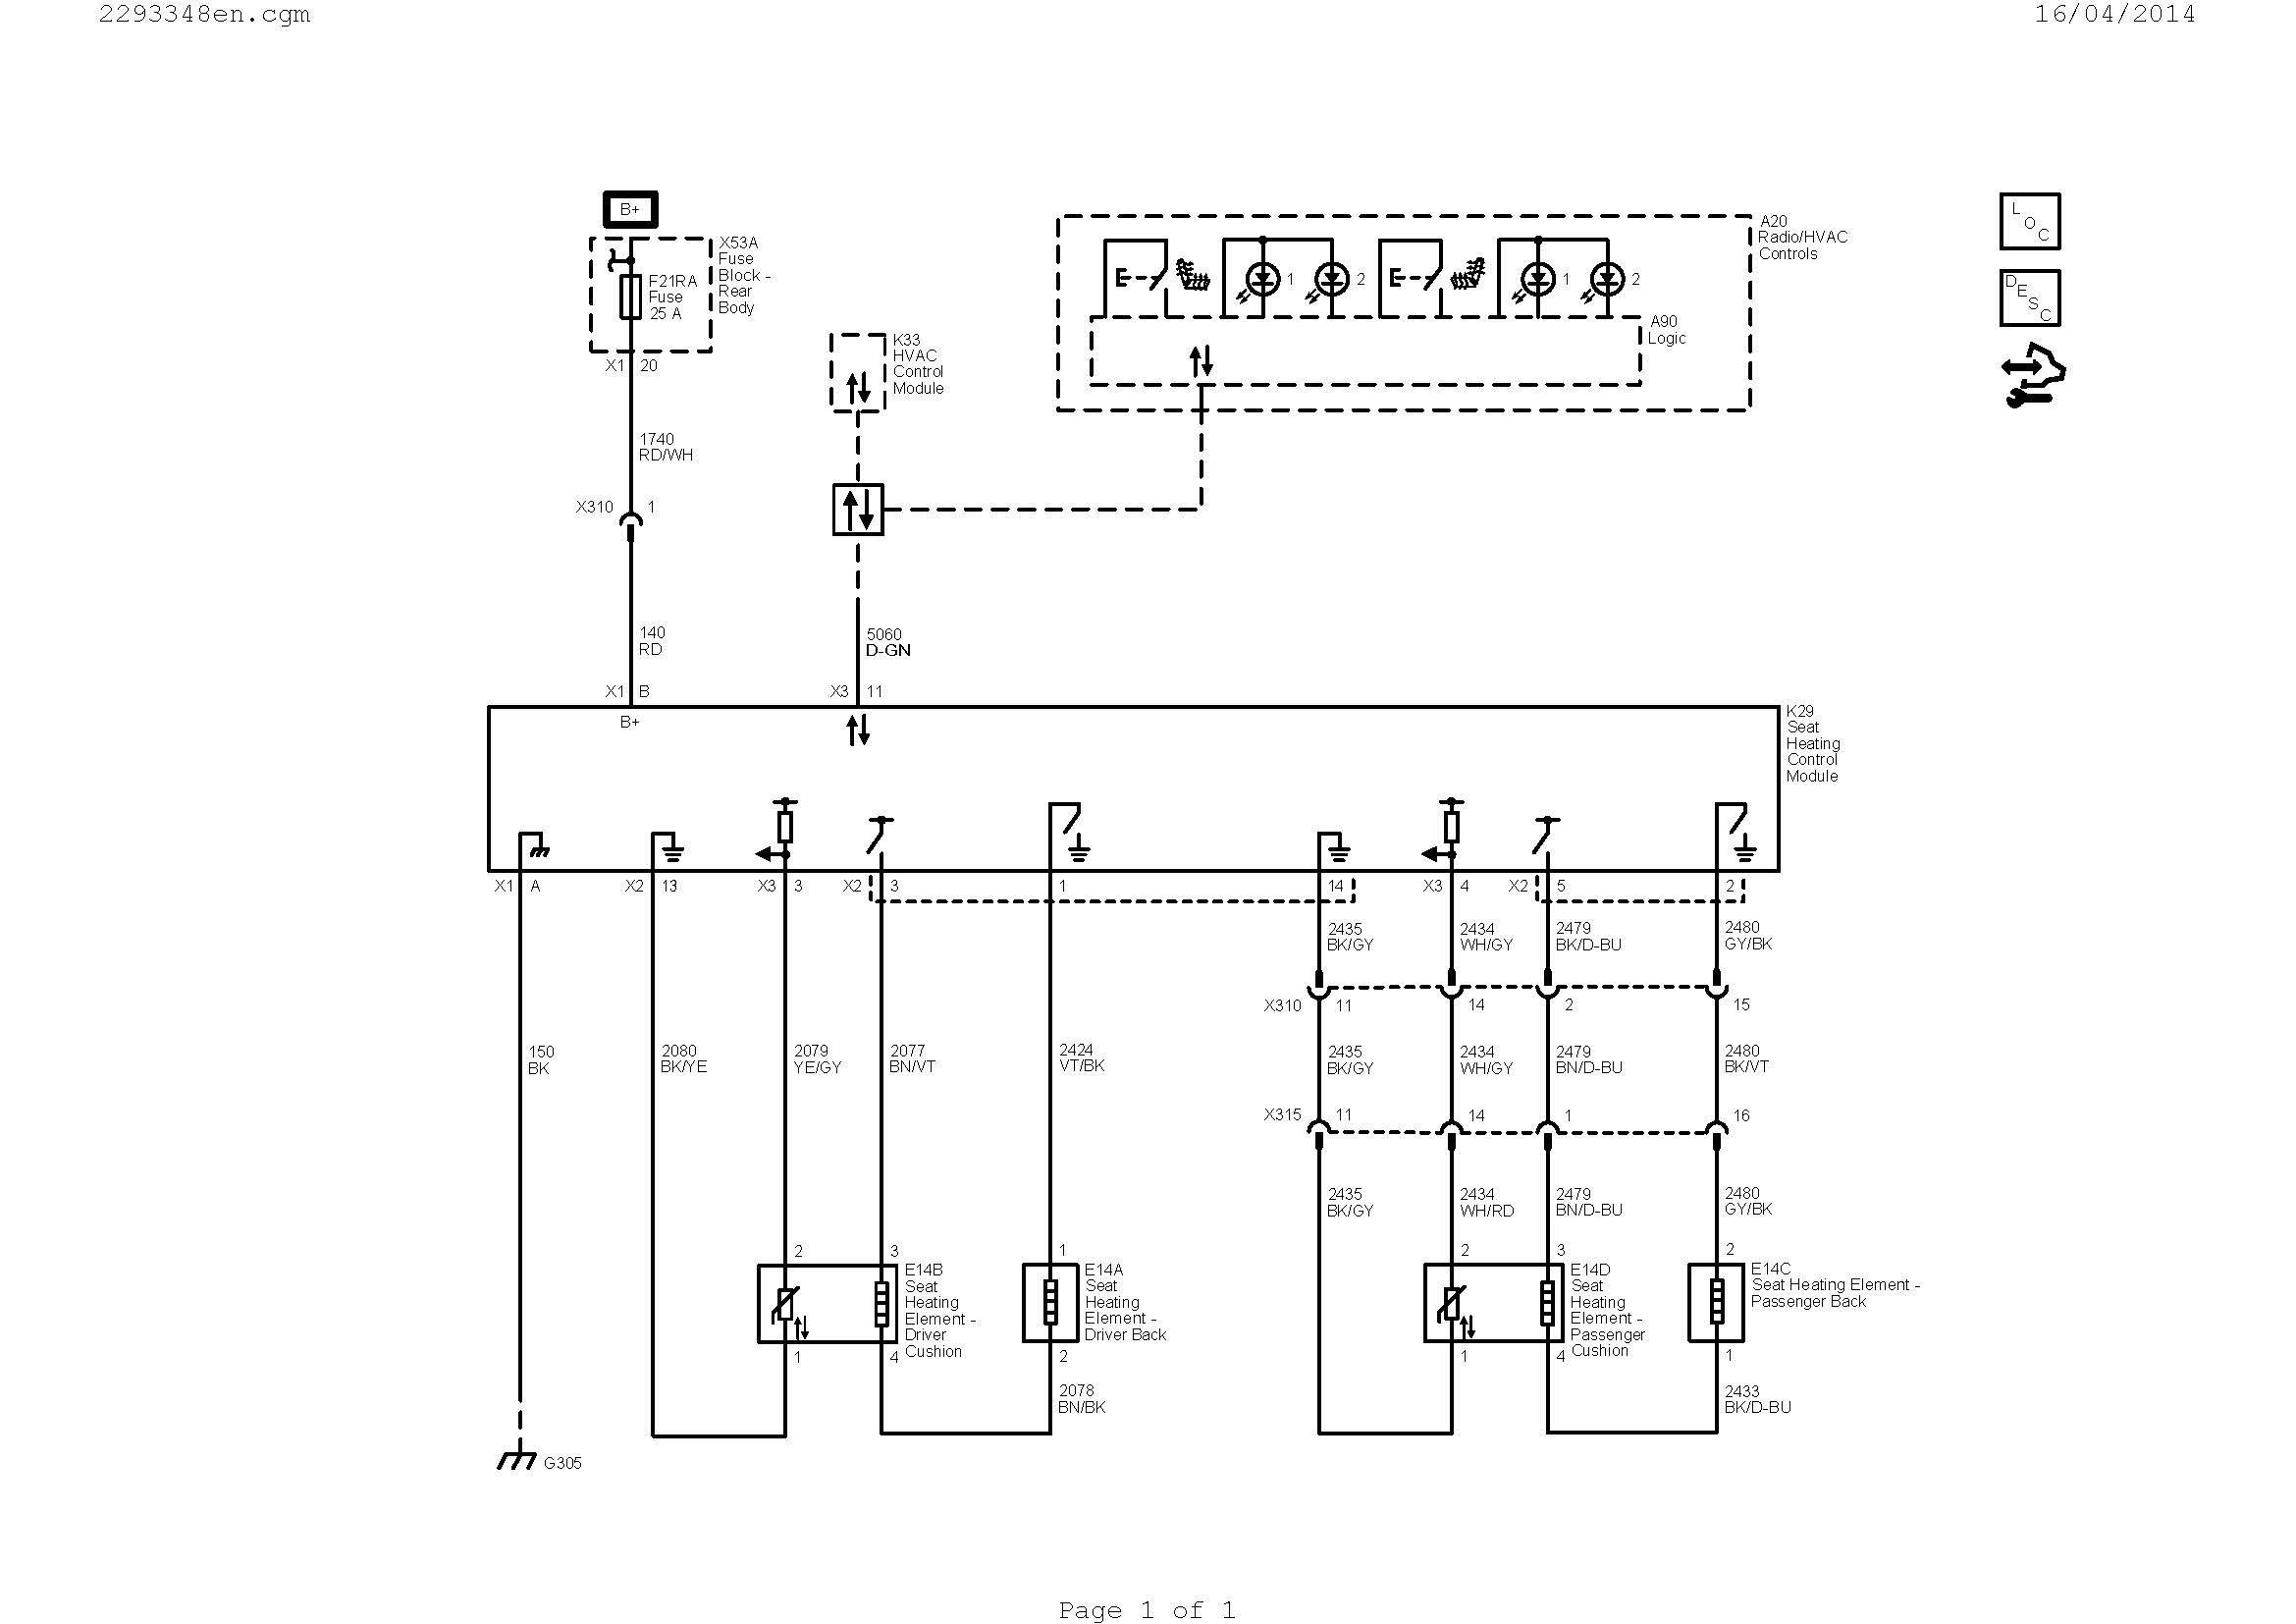 windlass wiring diagram Collection-electric heater wiring diagram Collection Wiring Diagrams For Central Heating Refrence Hvac Diagram Best Hvac DOWNLOAD Wiring Diagram 4-l